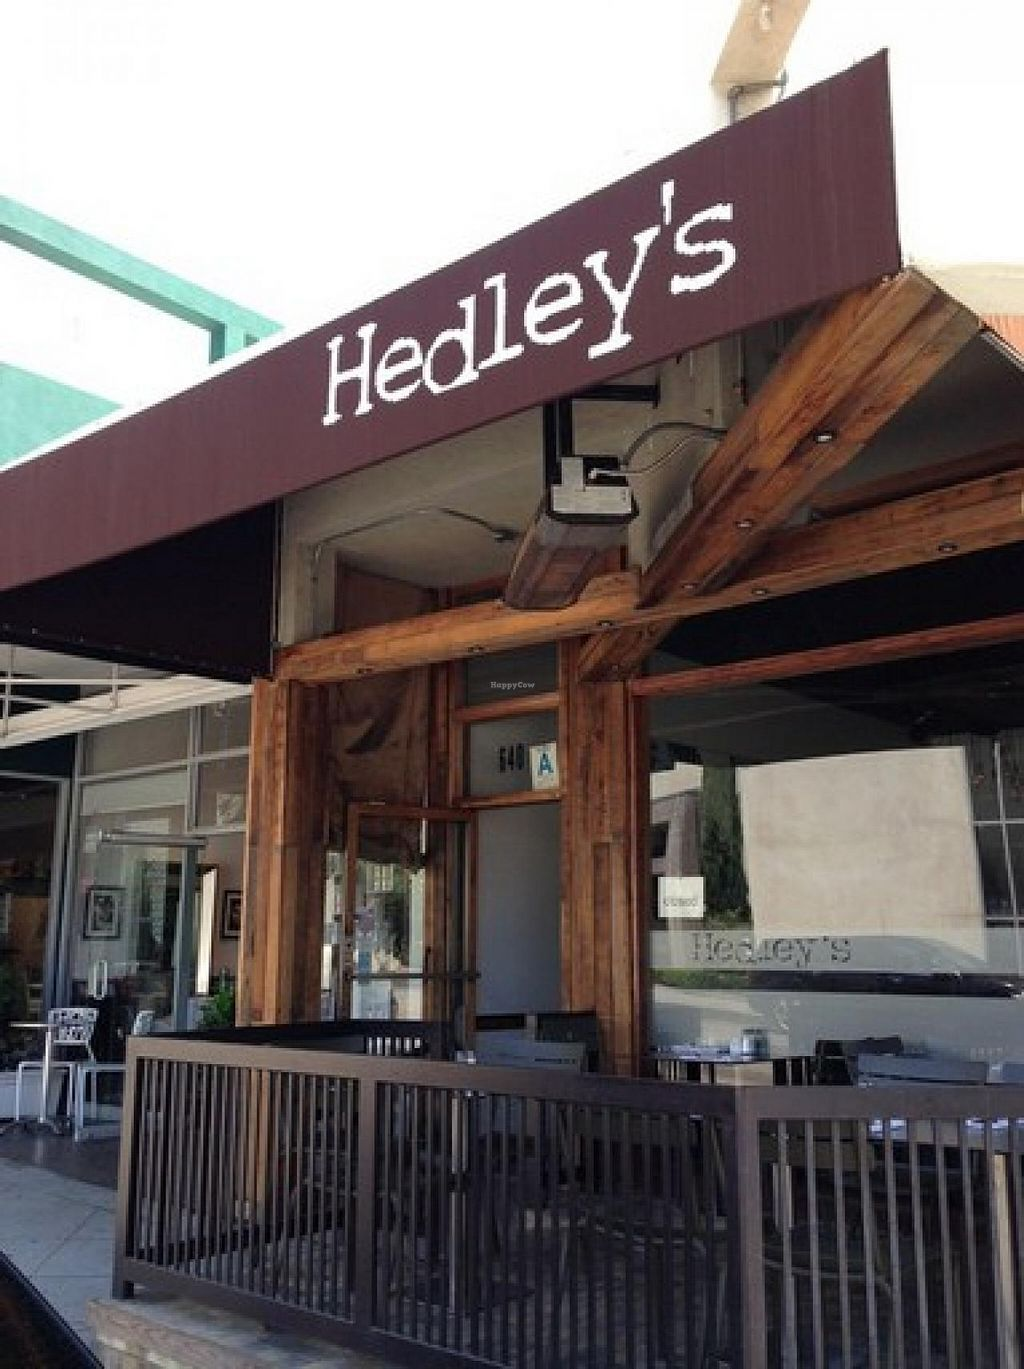 """Photo of Hedley's  by <a href=""""/members/profile/community"""">community</a> <br/>Hedley's <br/> July 25, 2014  - <a href='/contact/abuse/image/49245/75081'>Report</a>"""